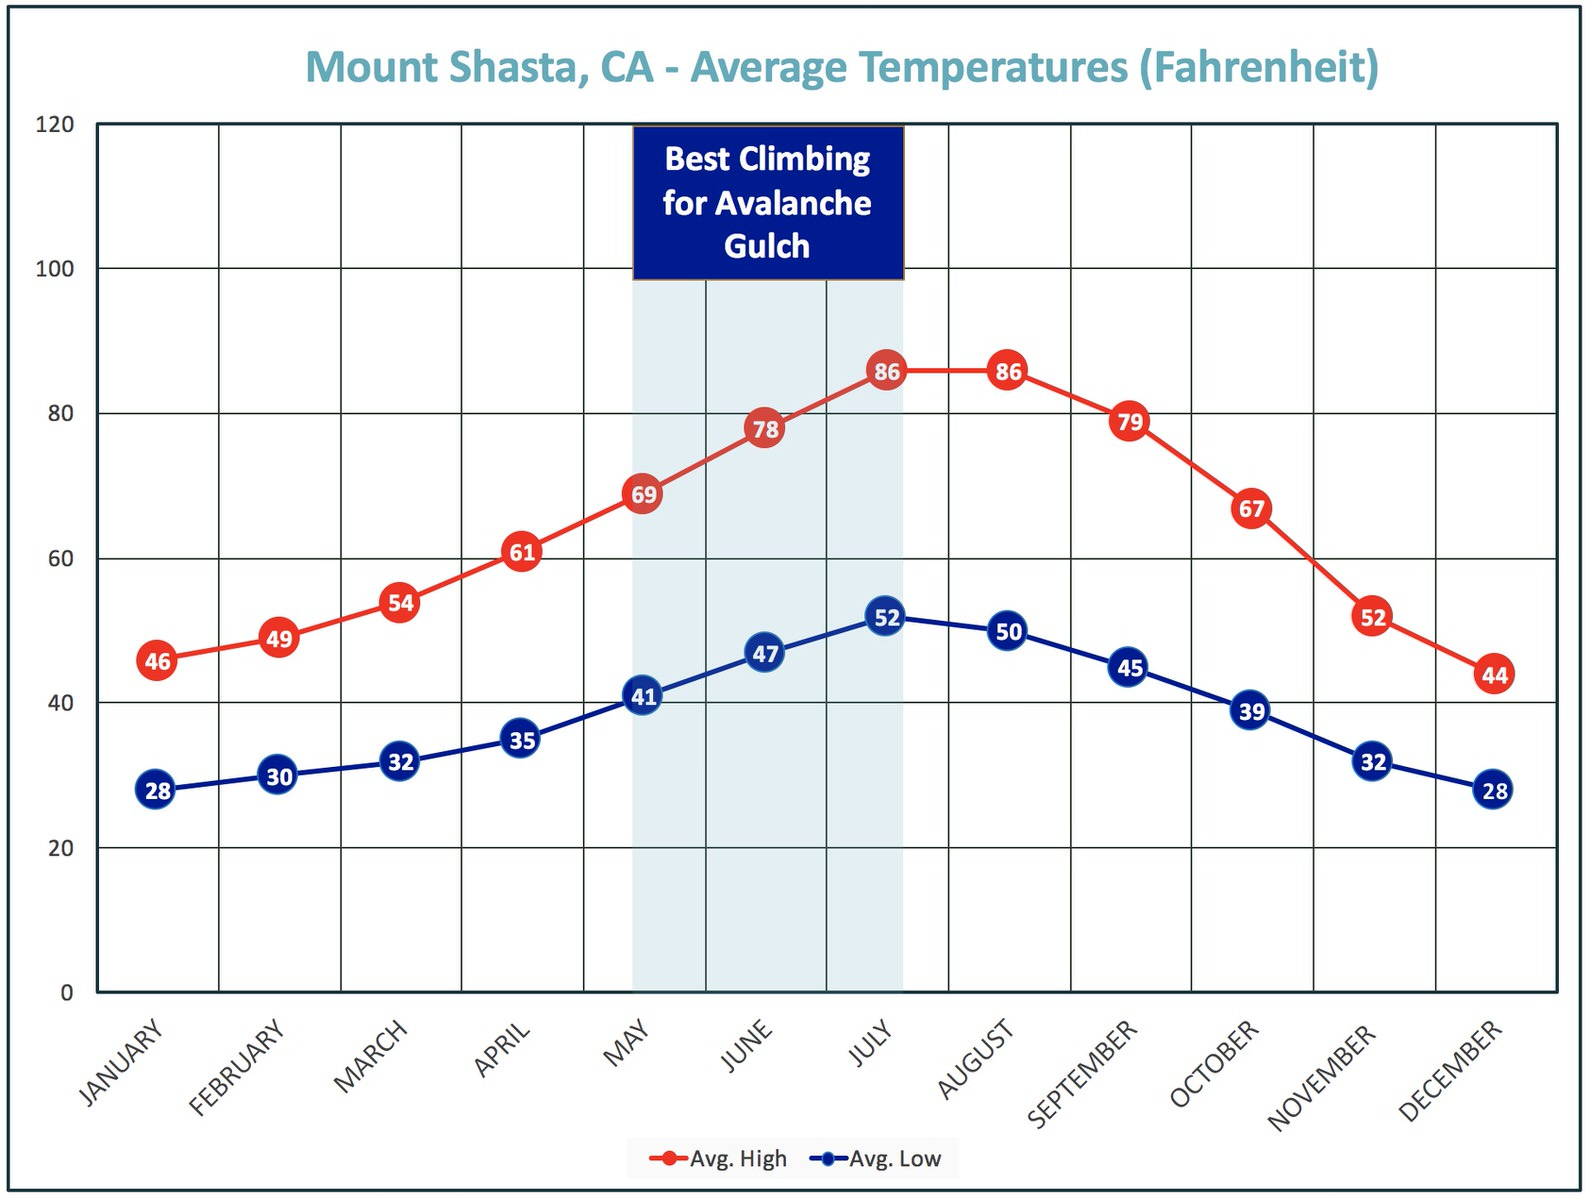 Always be prepared for rapid weather change on Mt. Shasta.